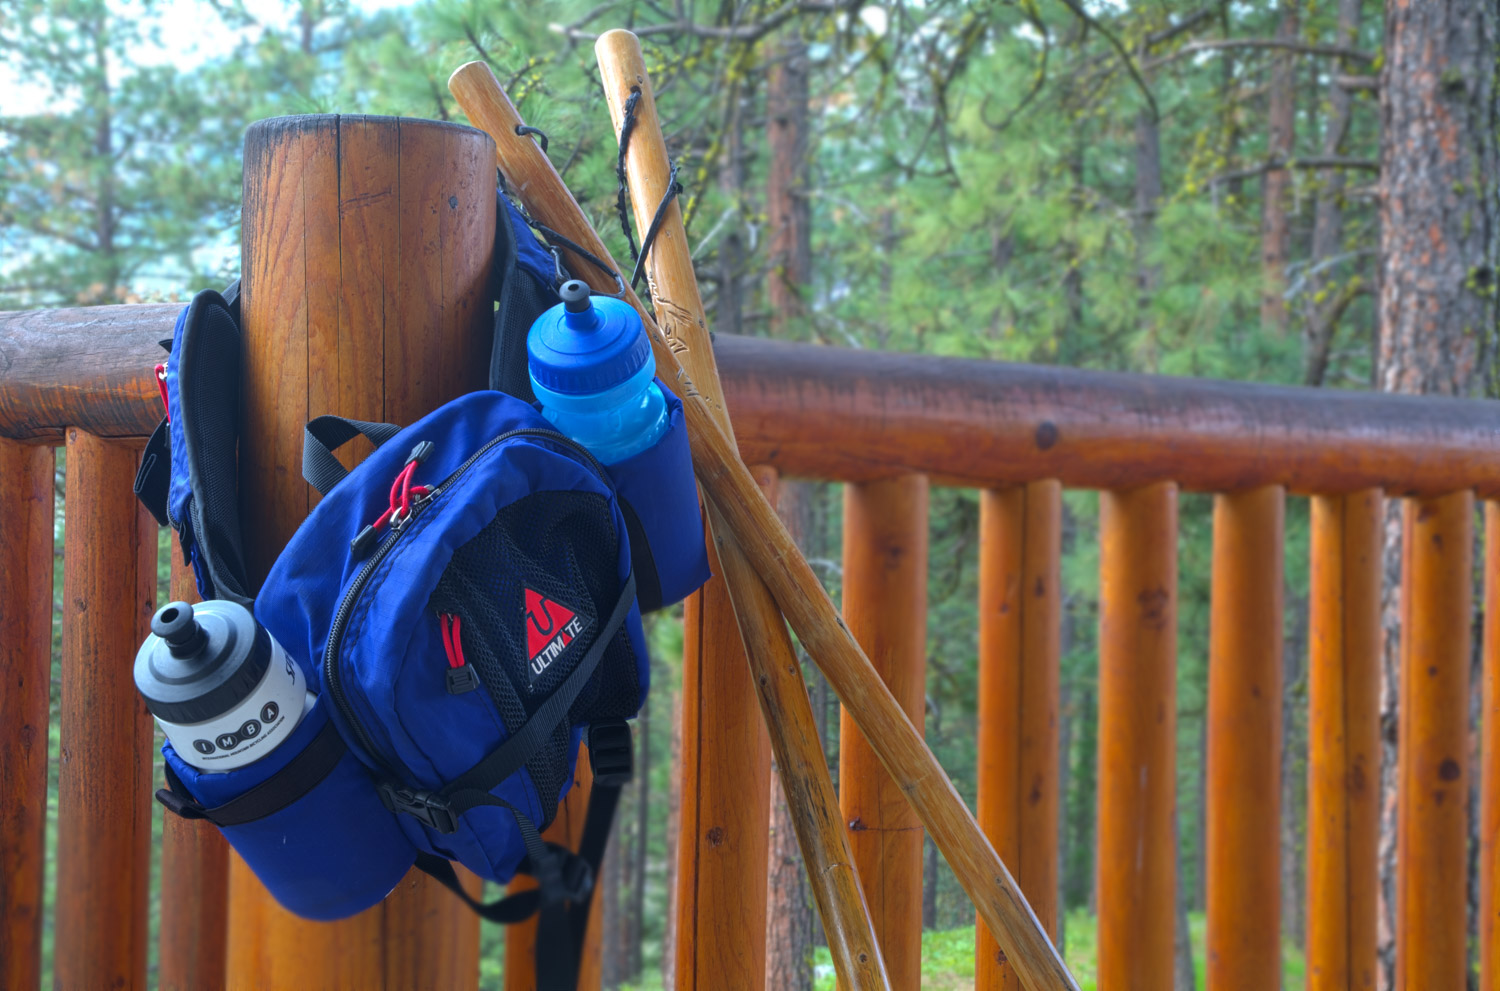 Hiking Packs & Sticks